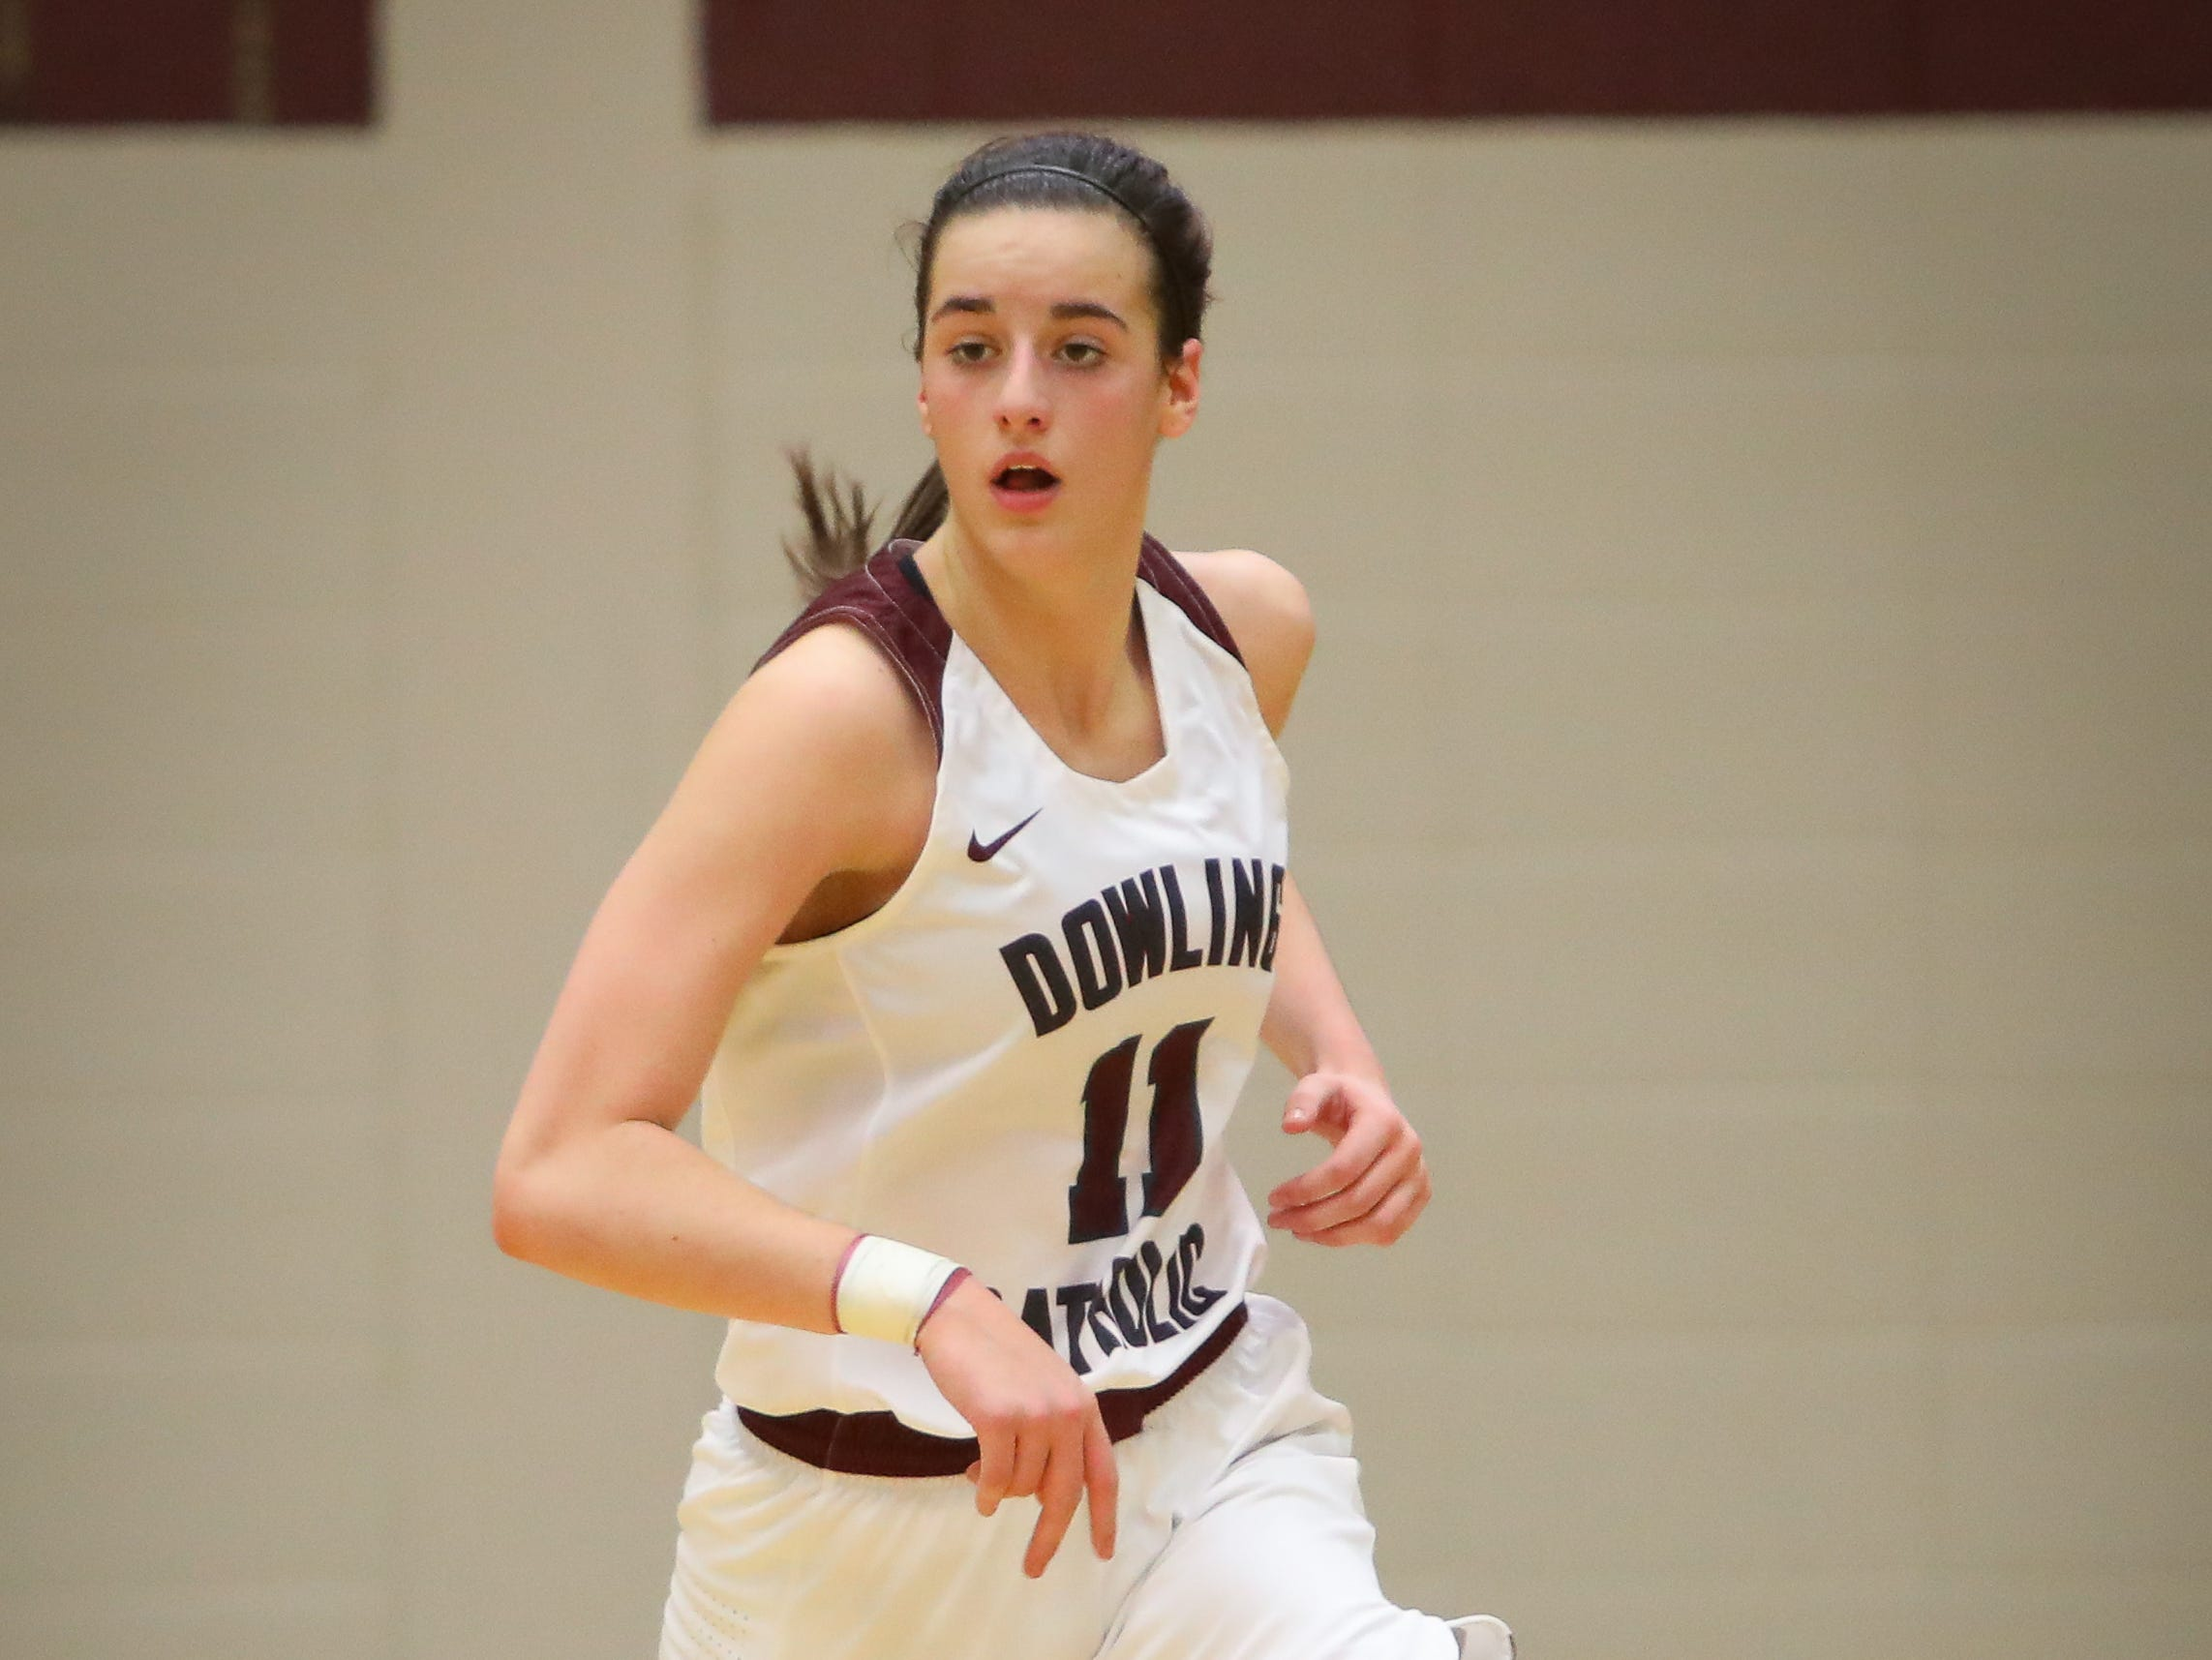 Dowling junior Caitlin Clark brings the ball up the court during a girls high school basketball game between the Urbandale J-Hawks and the Dowling Catholic Maroons at Dowling Catholic High School on Jan. 11, 2019 in West Des Moines, Iowa. Clark went on to score 46 points in the game.